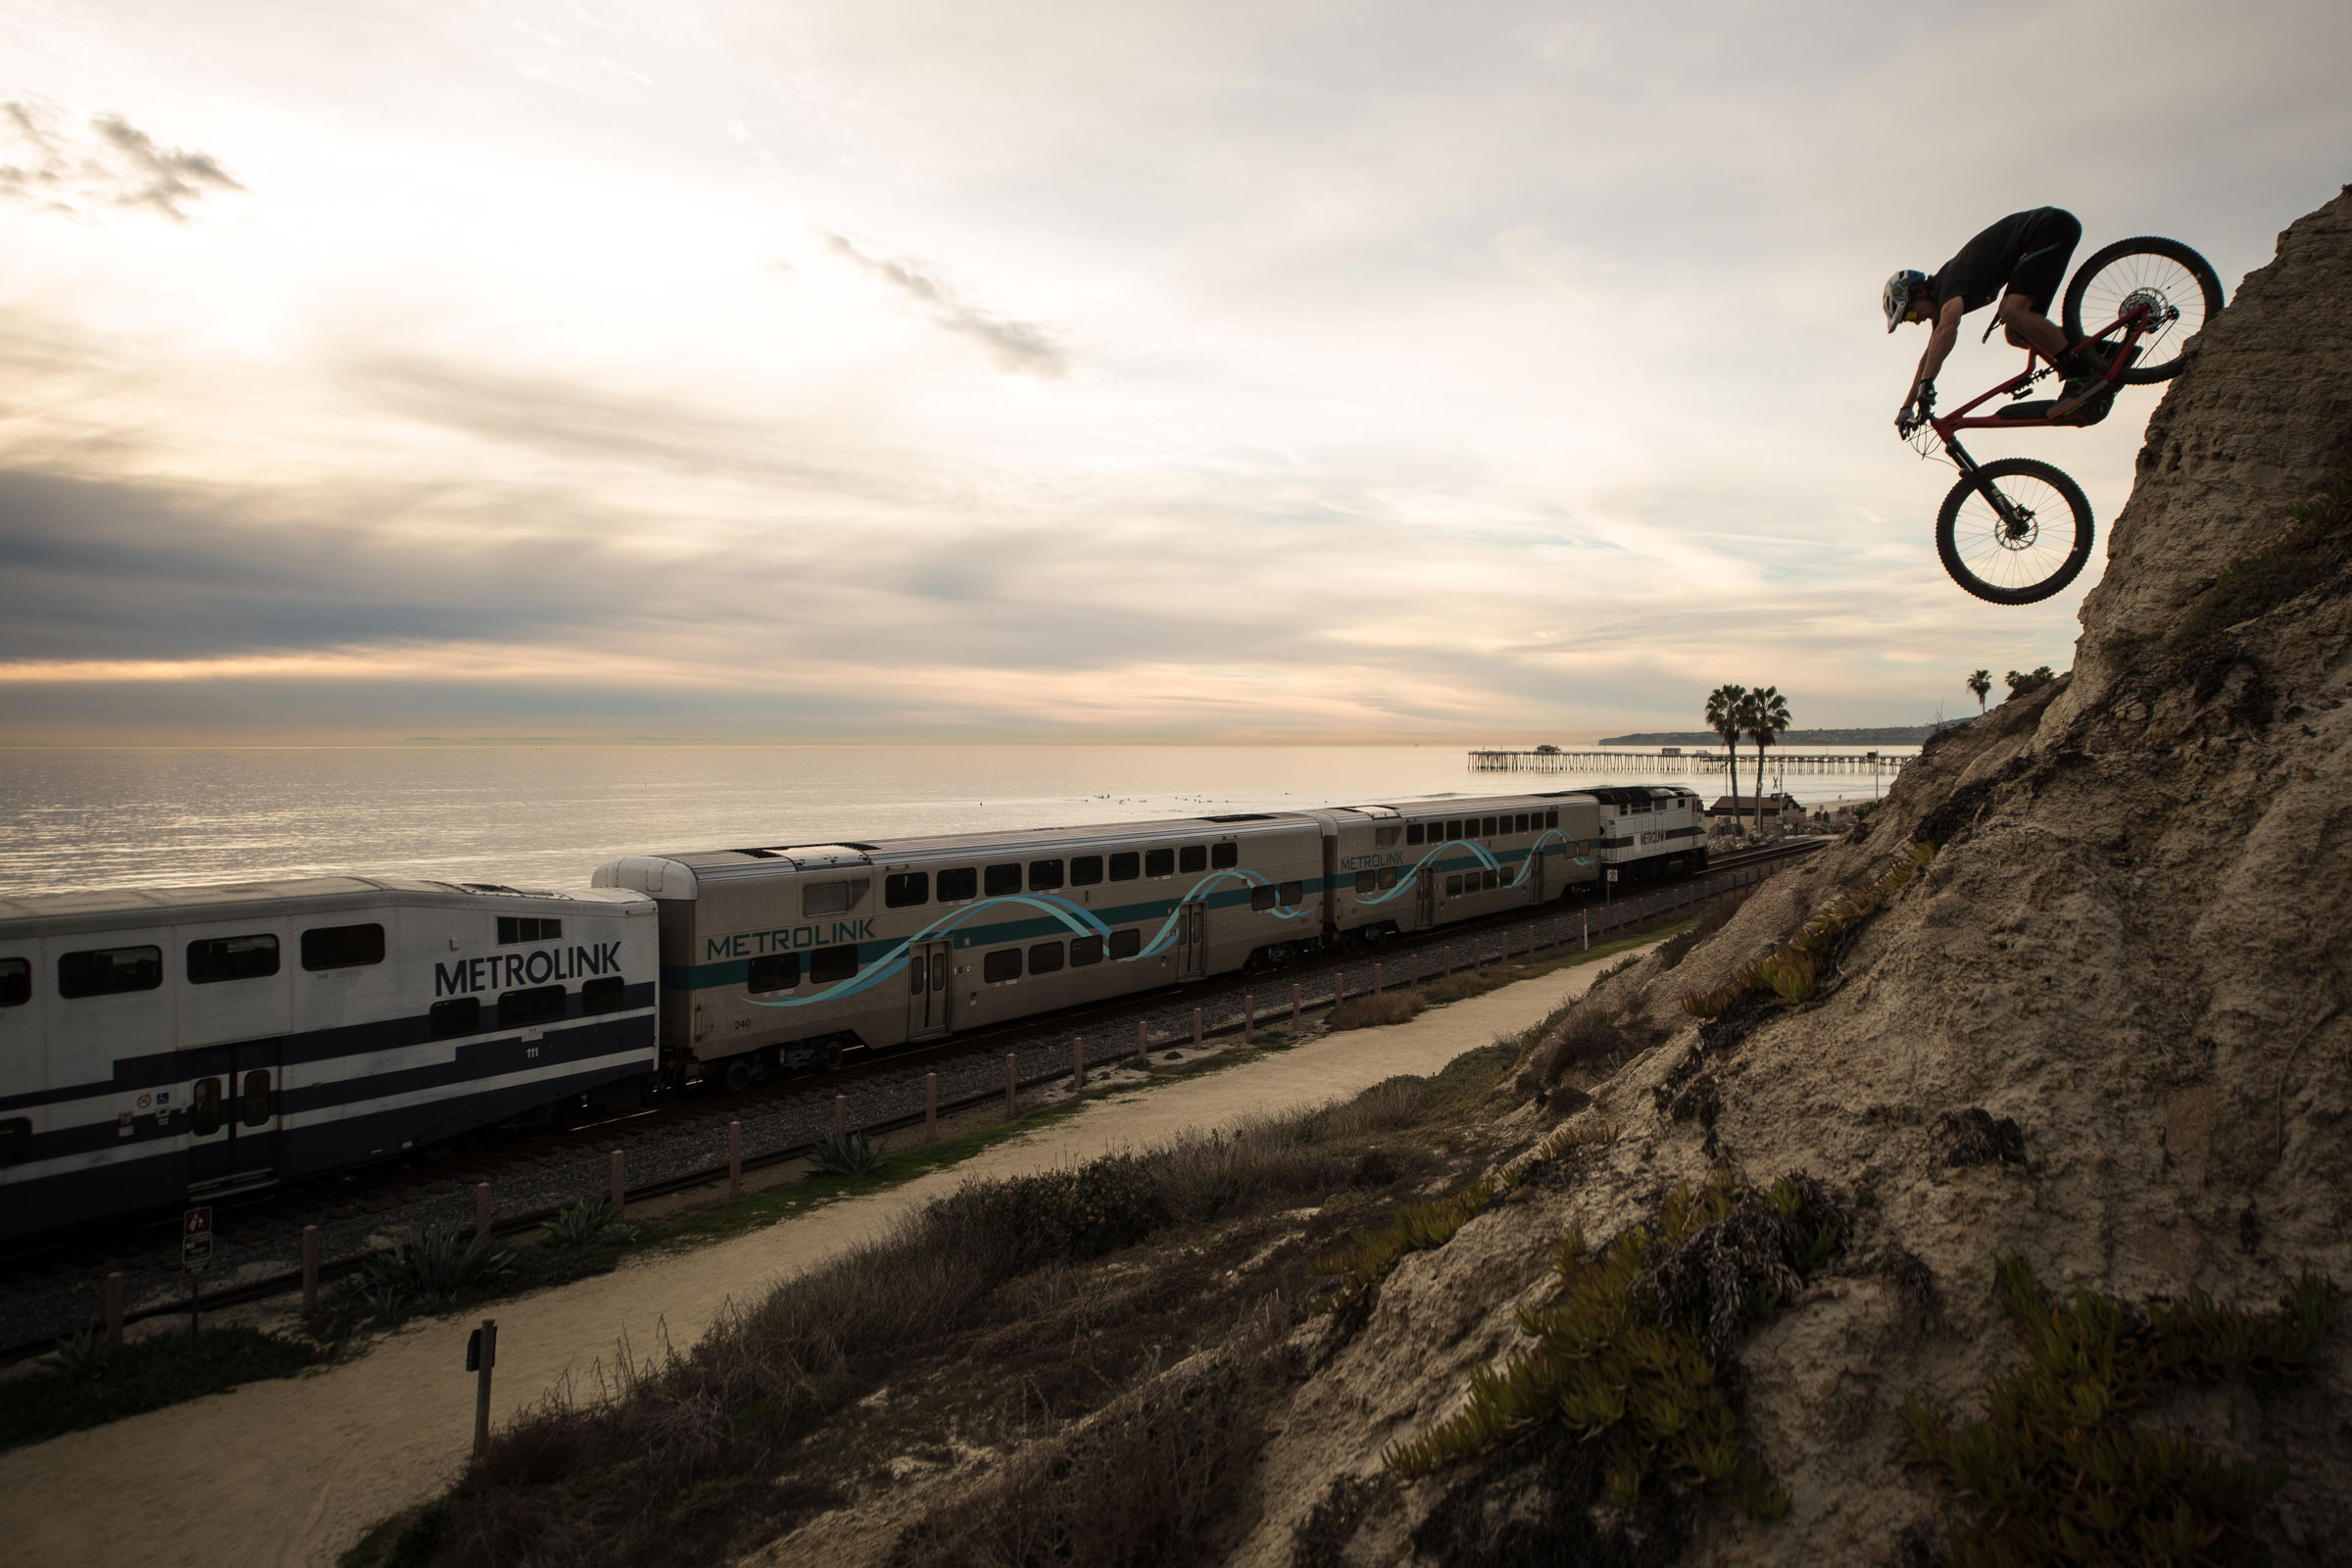 Hot Topic: Making of the Commencal Meta Power Video